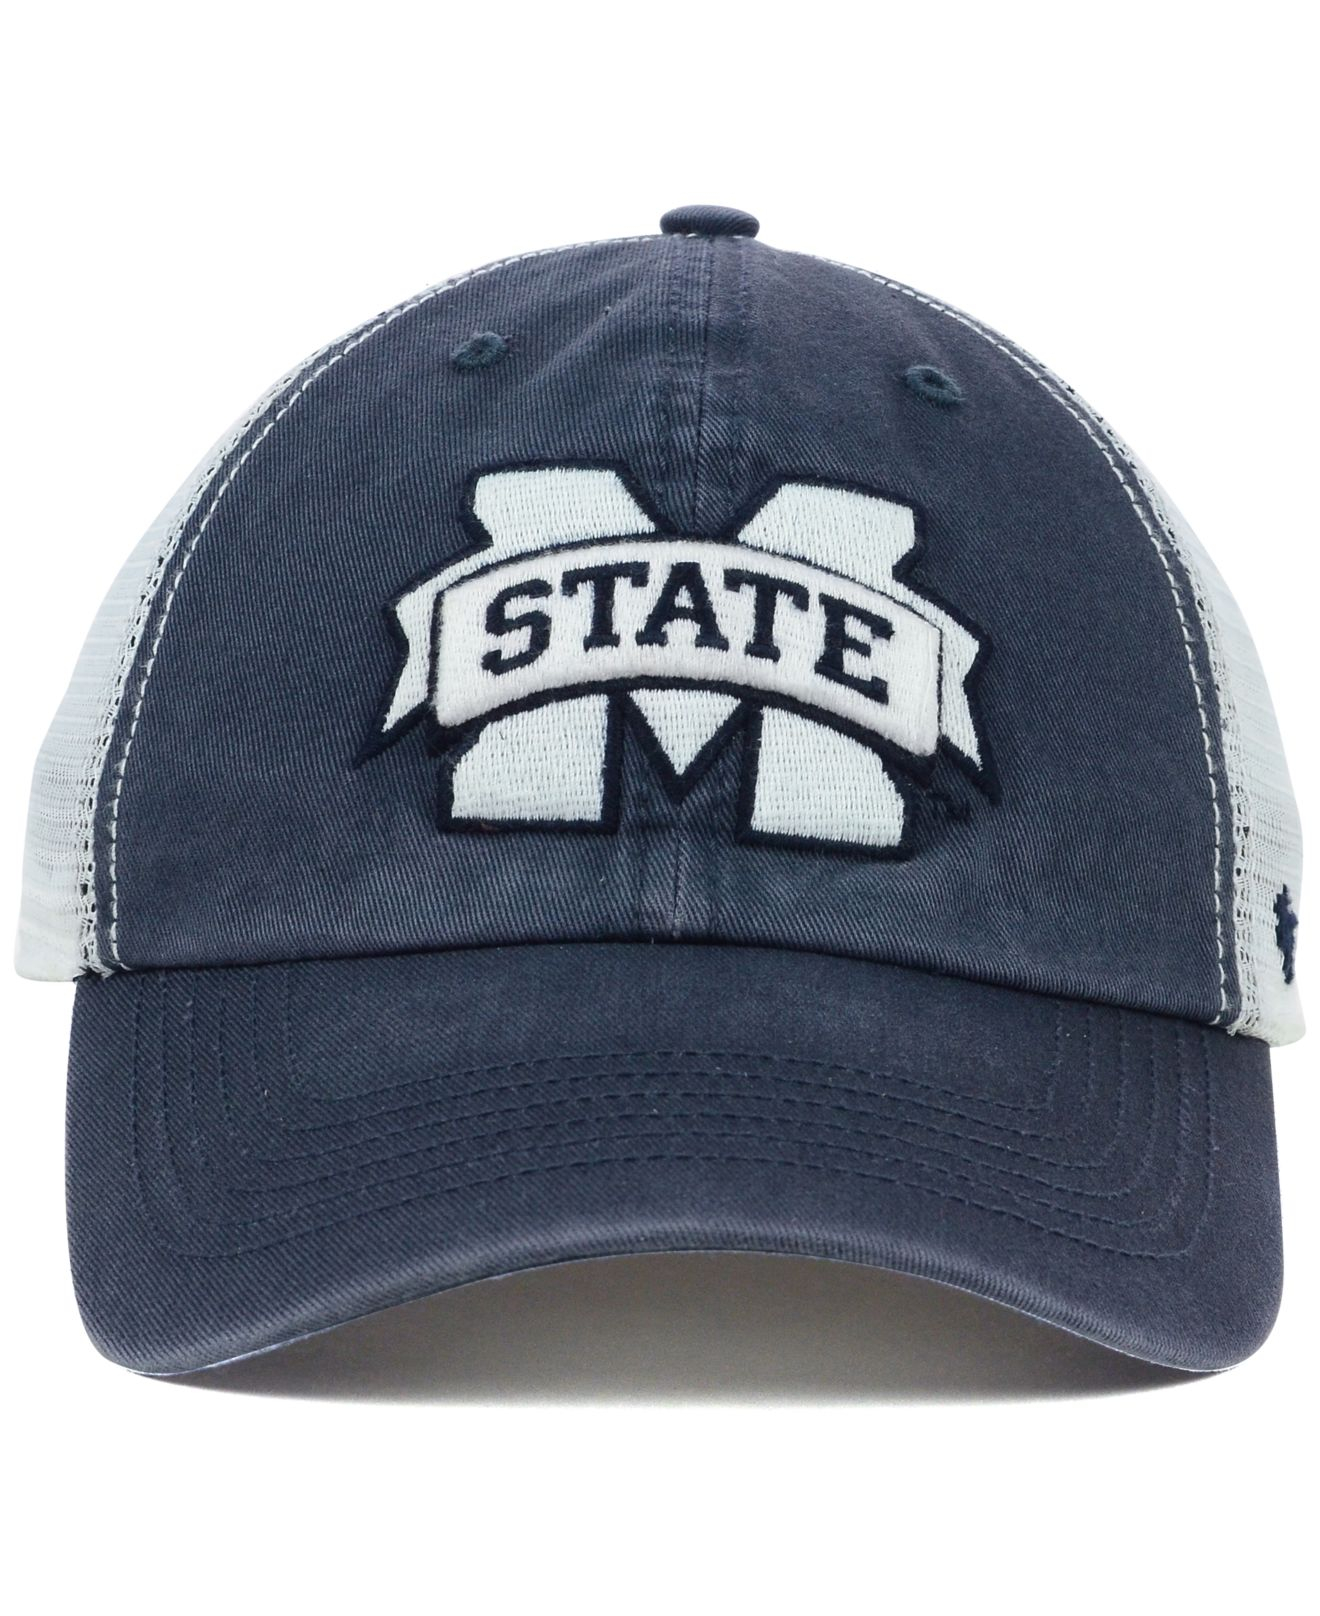 2779f7ef4b6 Lyst - 47 Brand Mississippi State Bulldogs Griffin Closer Cap in ...